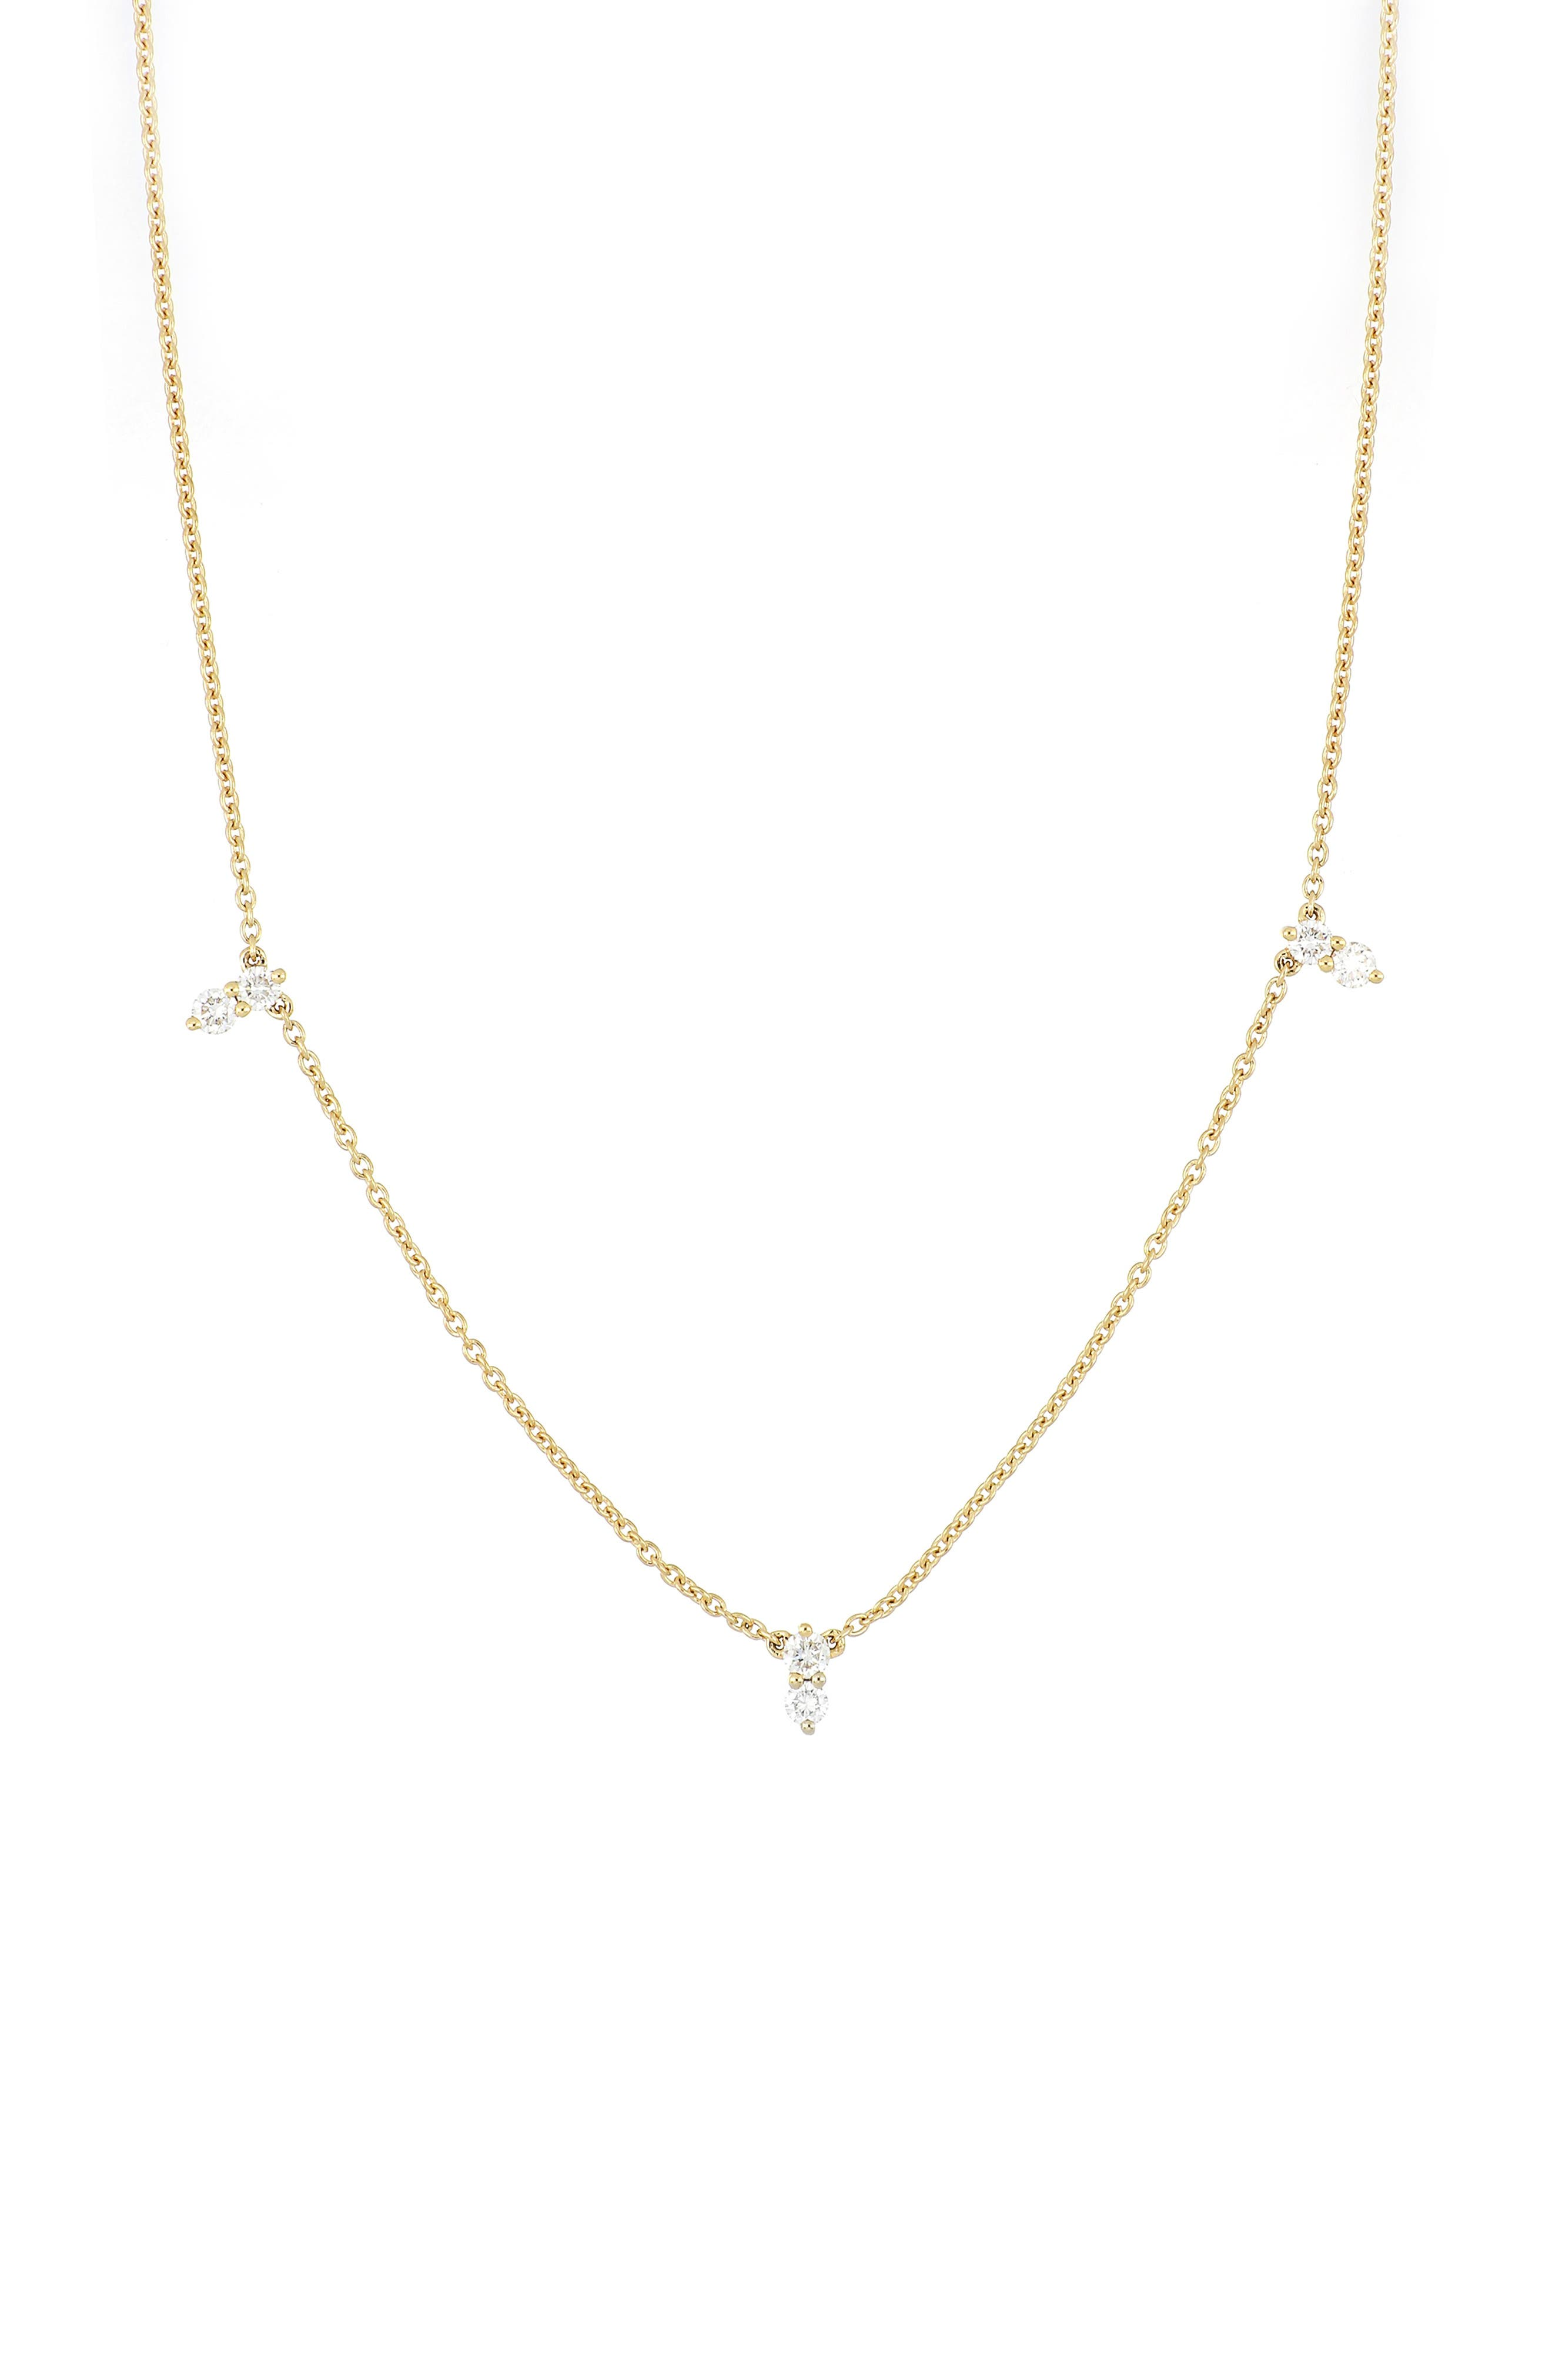 Spears of round diamonds sparkle beautifully from a handcrafted gold necklace that sits elegantly along the collarbone. Style Name: Bony Levy Rita Diamond Station Necklace (Nordstrom Exclusive). Style Number: 6050213. Available in stores.